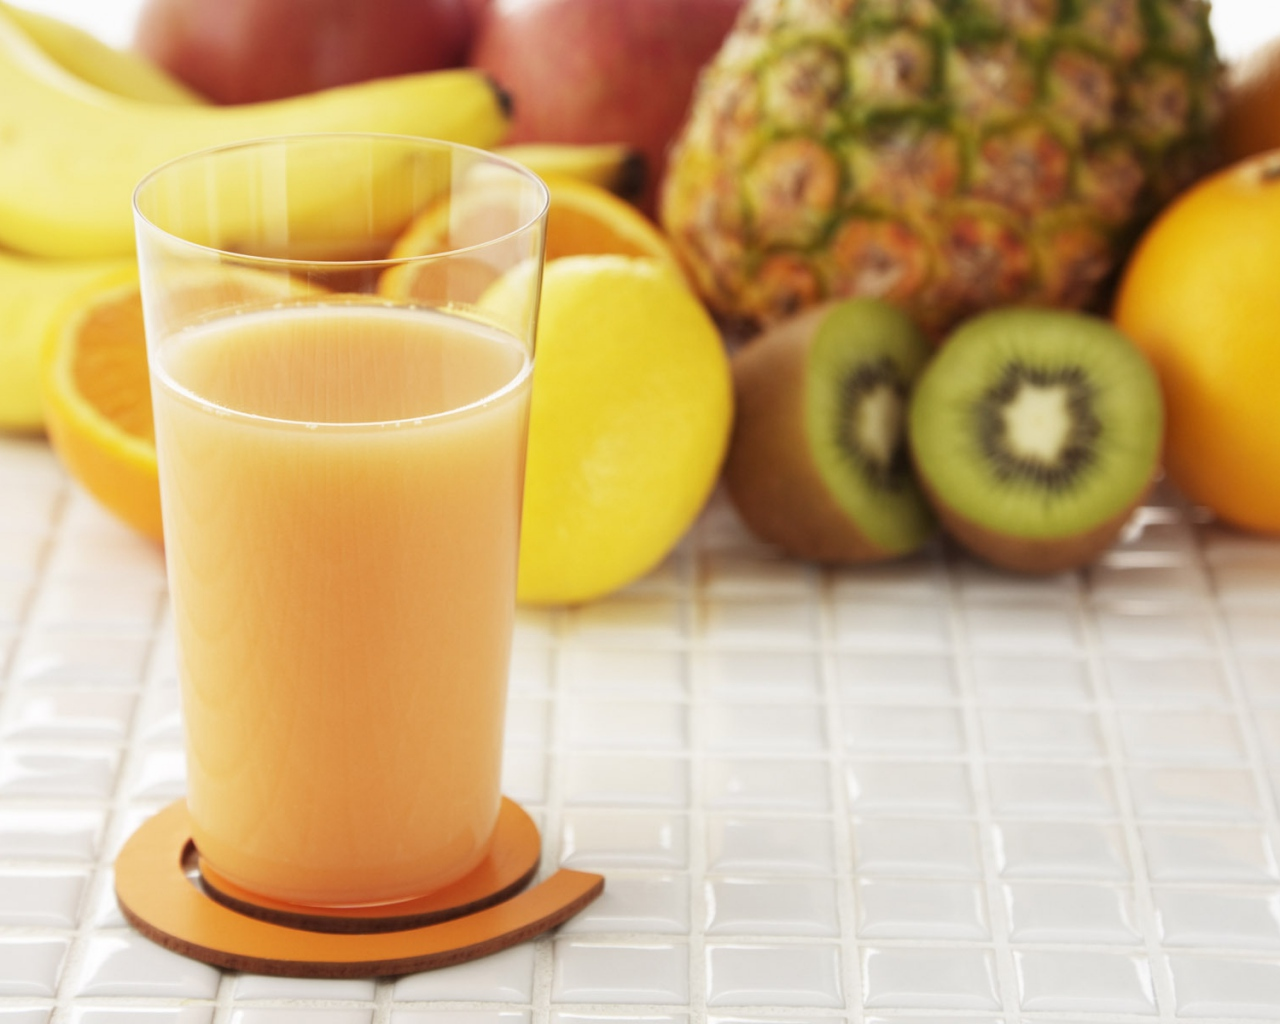 juice_fruit_natural_banana_pineapple_glass_multifruit_45158_1280x1024